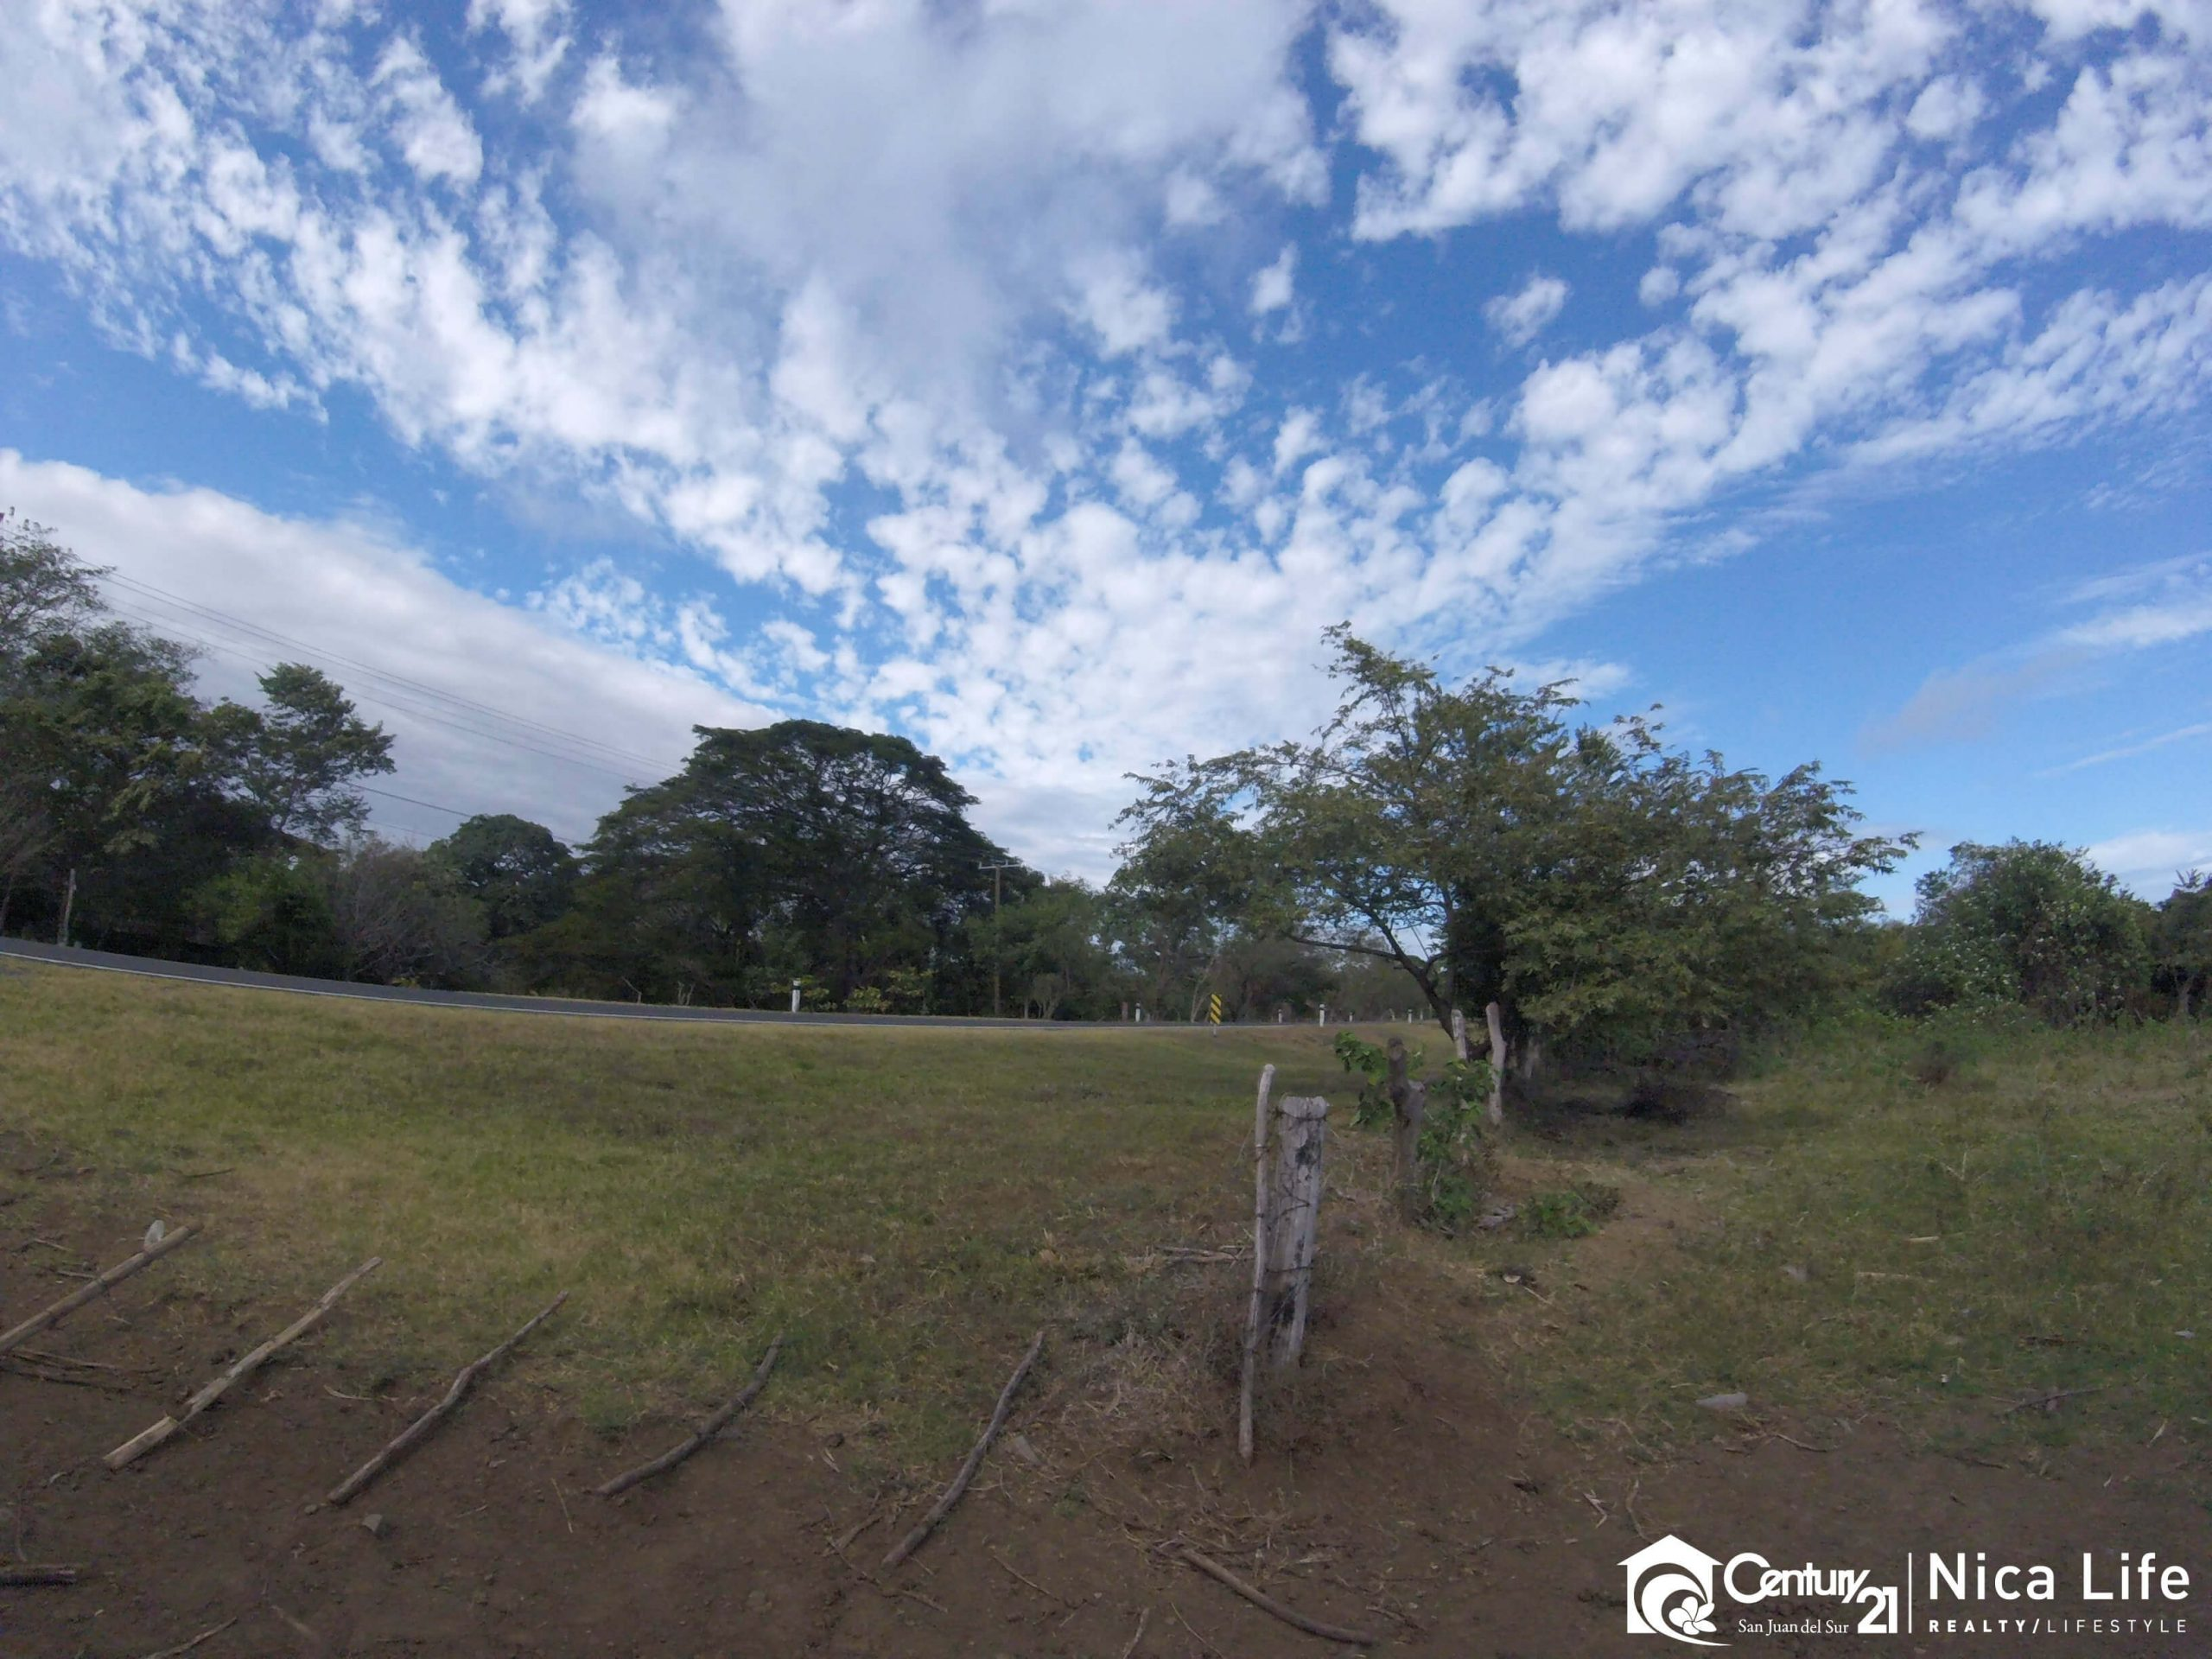 Farm Land for Sale,  10 minutes from town